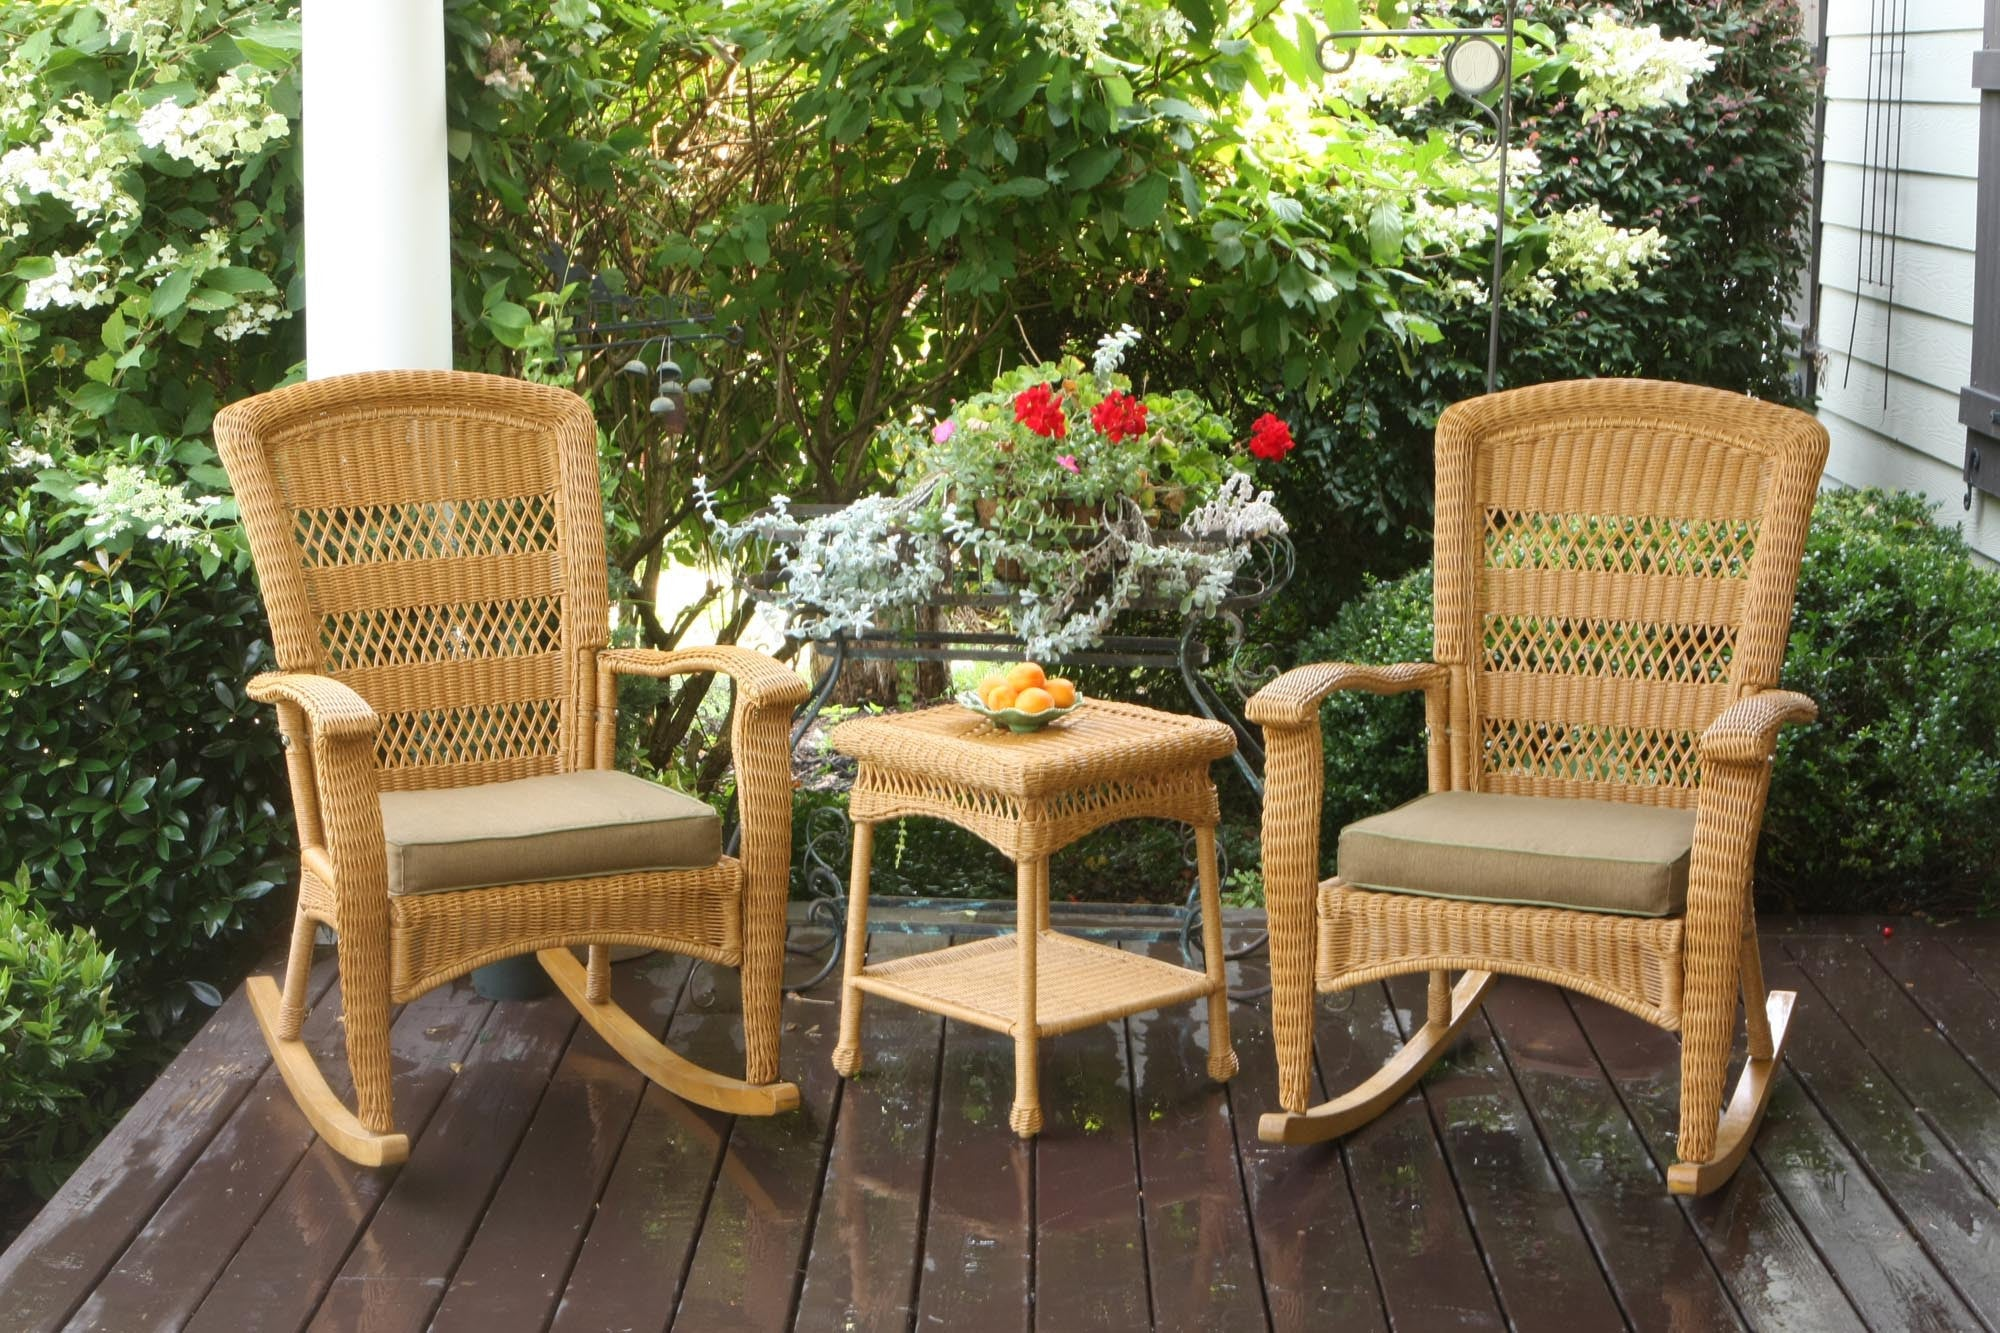 top opportunity lounge to home pretty list bayview outdoor england reflections new cute deep driftwood invigorating furniture rocking flanders ht consignment lloyd set wicker rocker pier chair seating